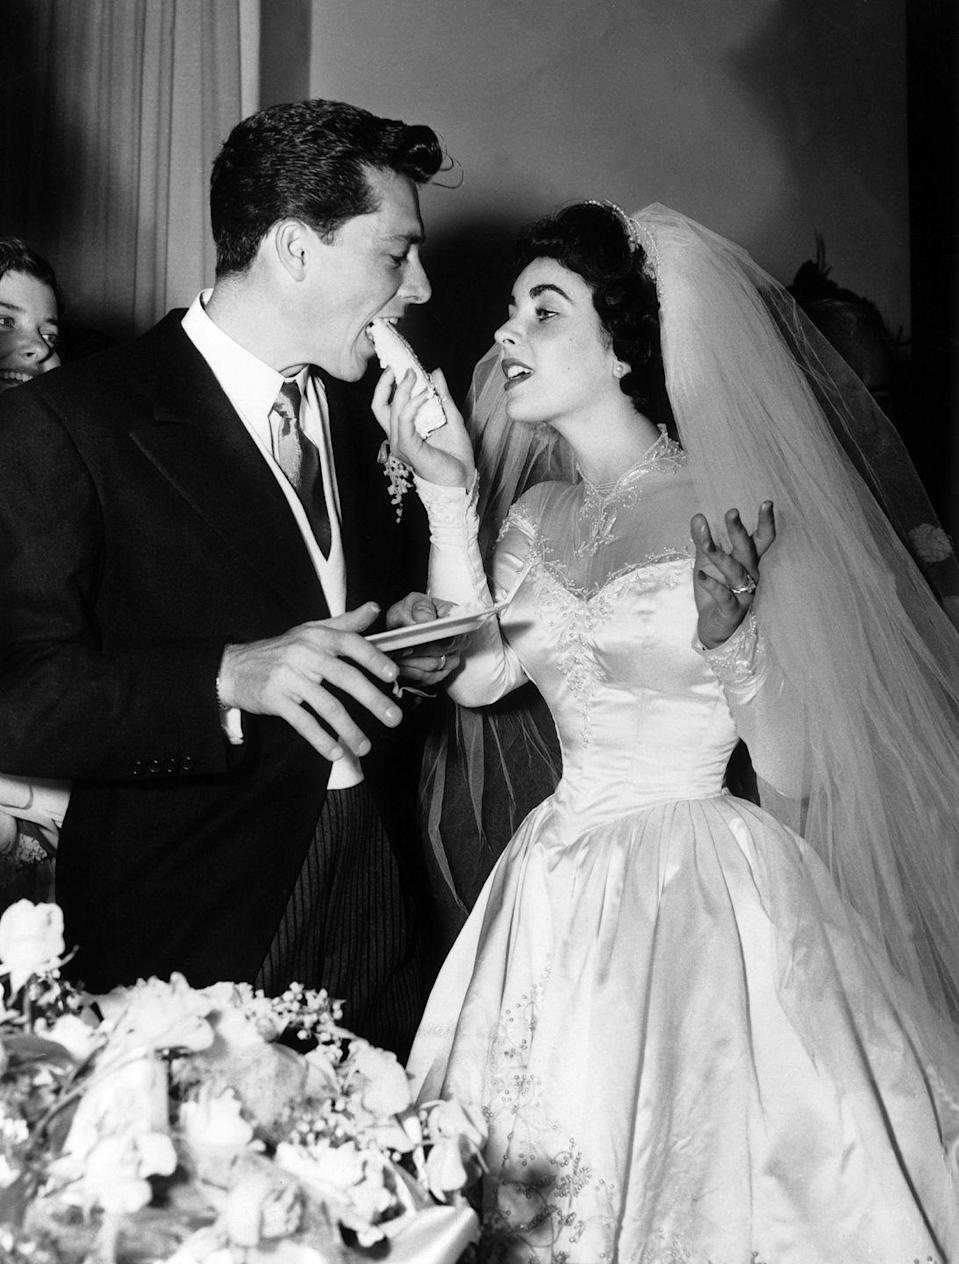 "<p>Actress Elizabeth Taylor <a href=""https://www.distractify.com/p/celebrities-multiple-marriages"" rel=""nofollow noopener"" target=""_blank"" data-ylk=""slk:wed"" class=""link rapid-noclick-resp"">wed</a> seven men in eight marriages. Her first marriage was to hotel heir Conrad Hilton, Jr., followed by actor Michael Wilding, theater producer Mike Todd, singer Eddie Fisher, actor Richard Burton (who she married twice), politician John Warner and construction worker Larry Fortensky.</p>"